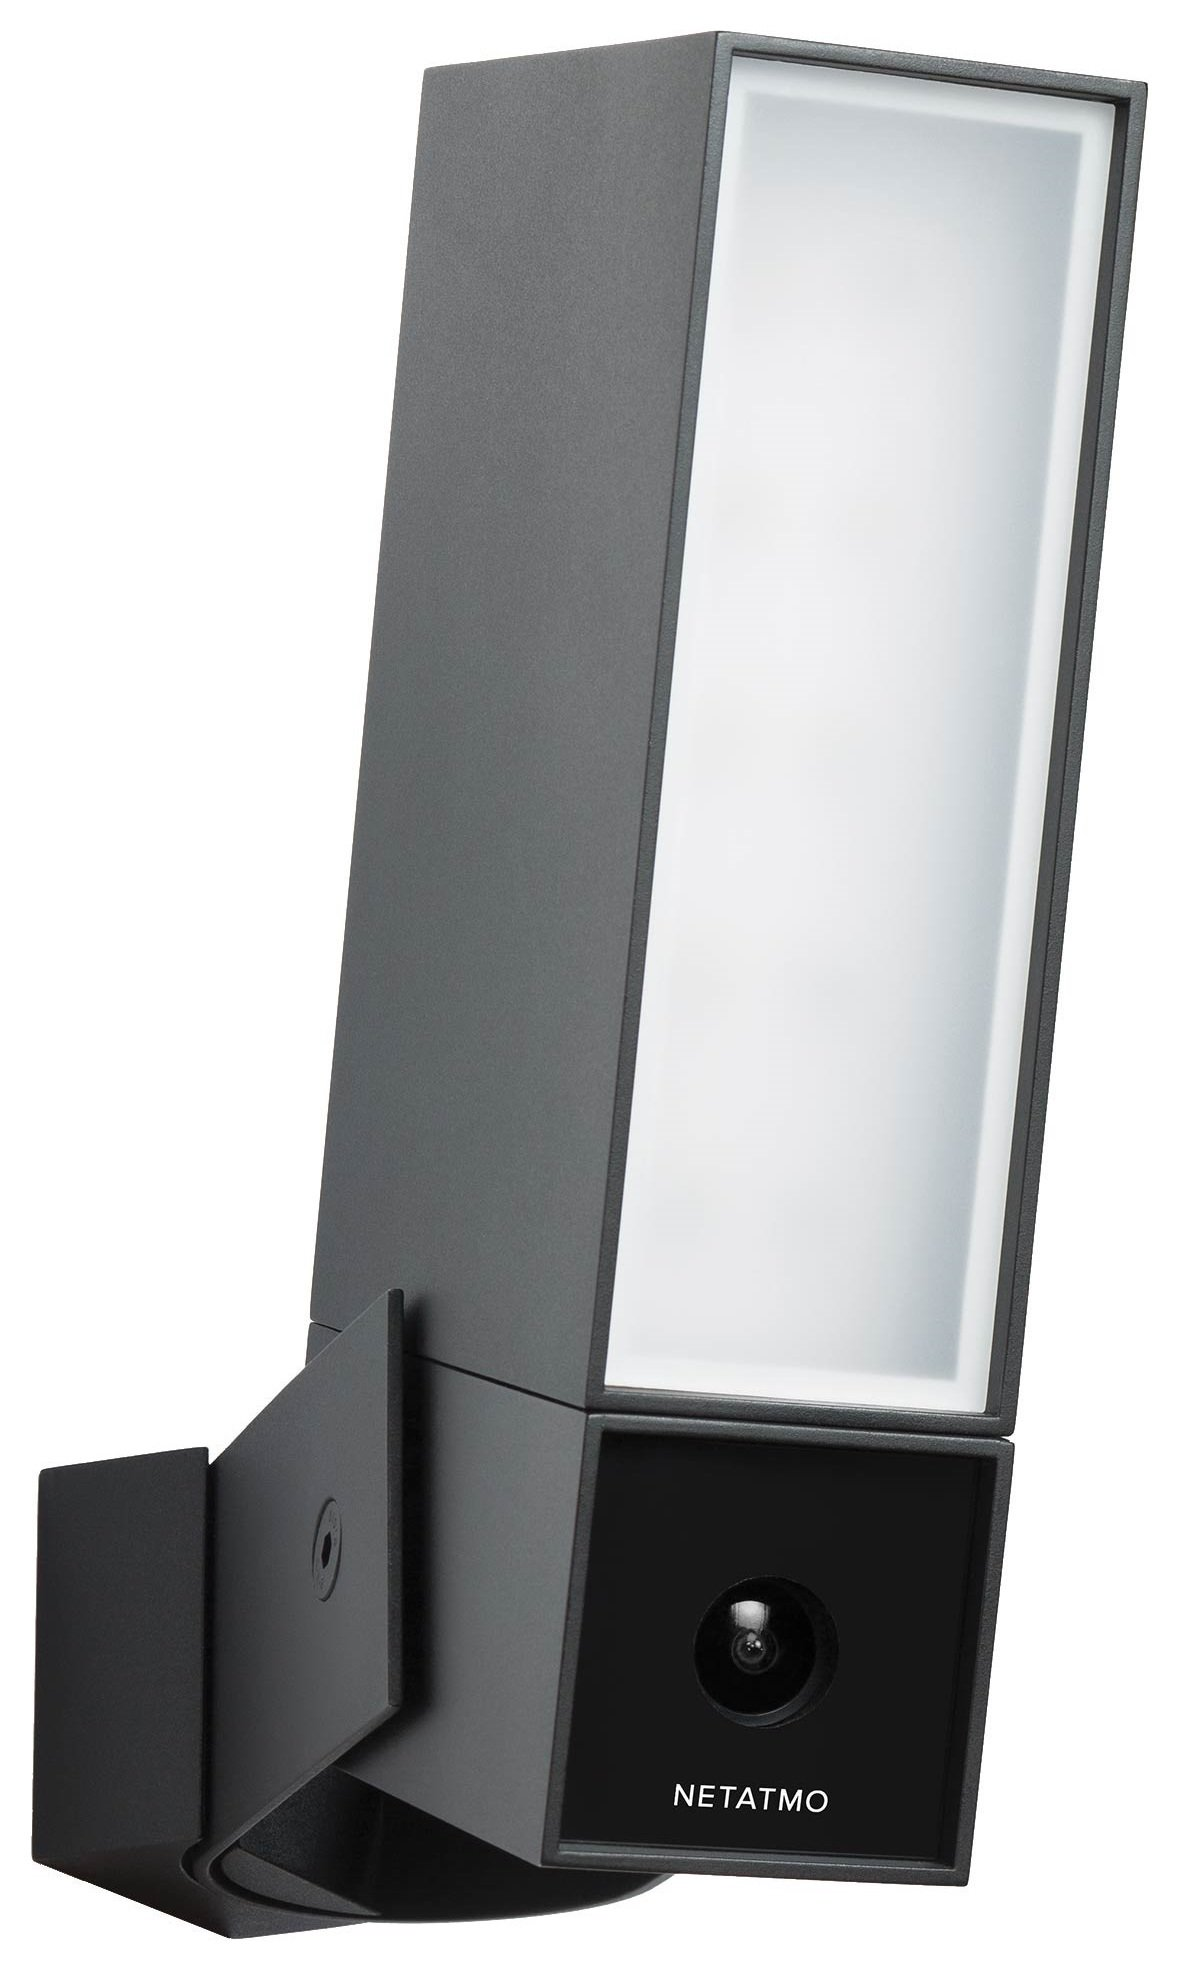 Image of Netatmo Presence Security Camera with Floodlight.